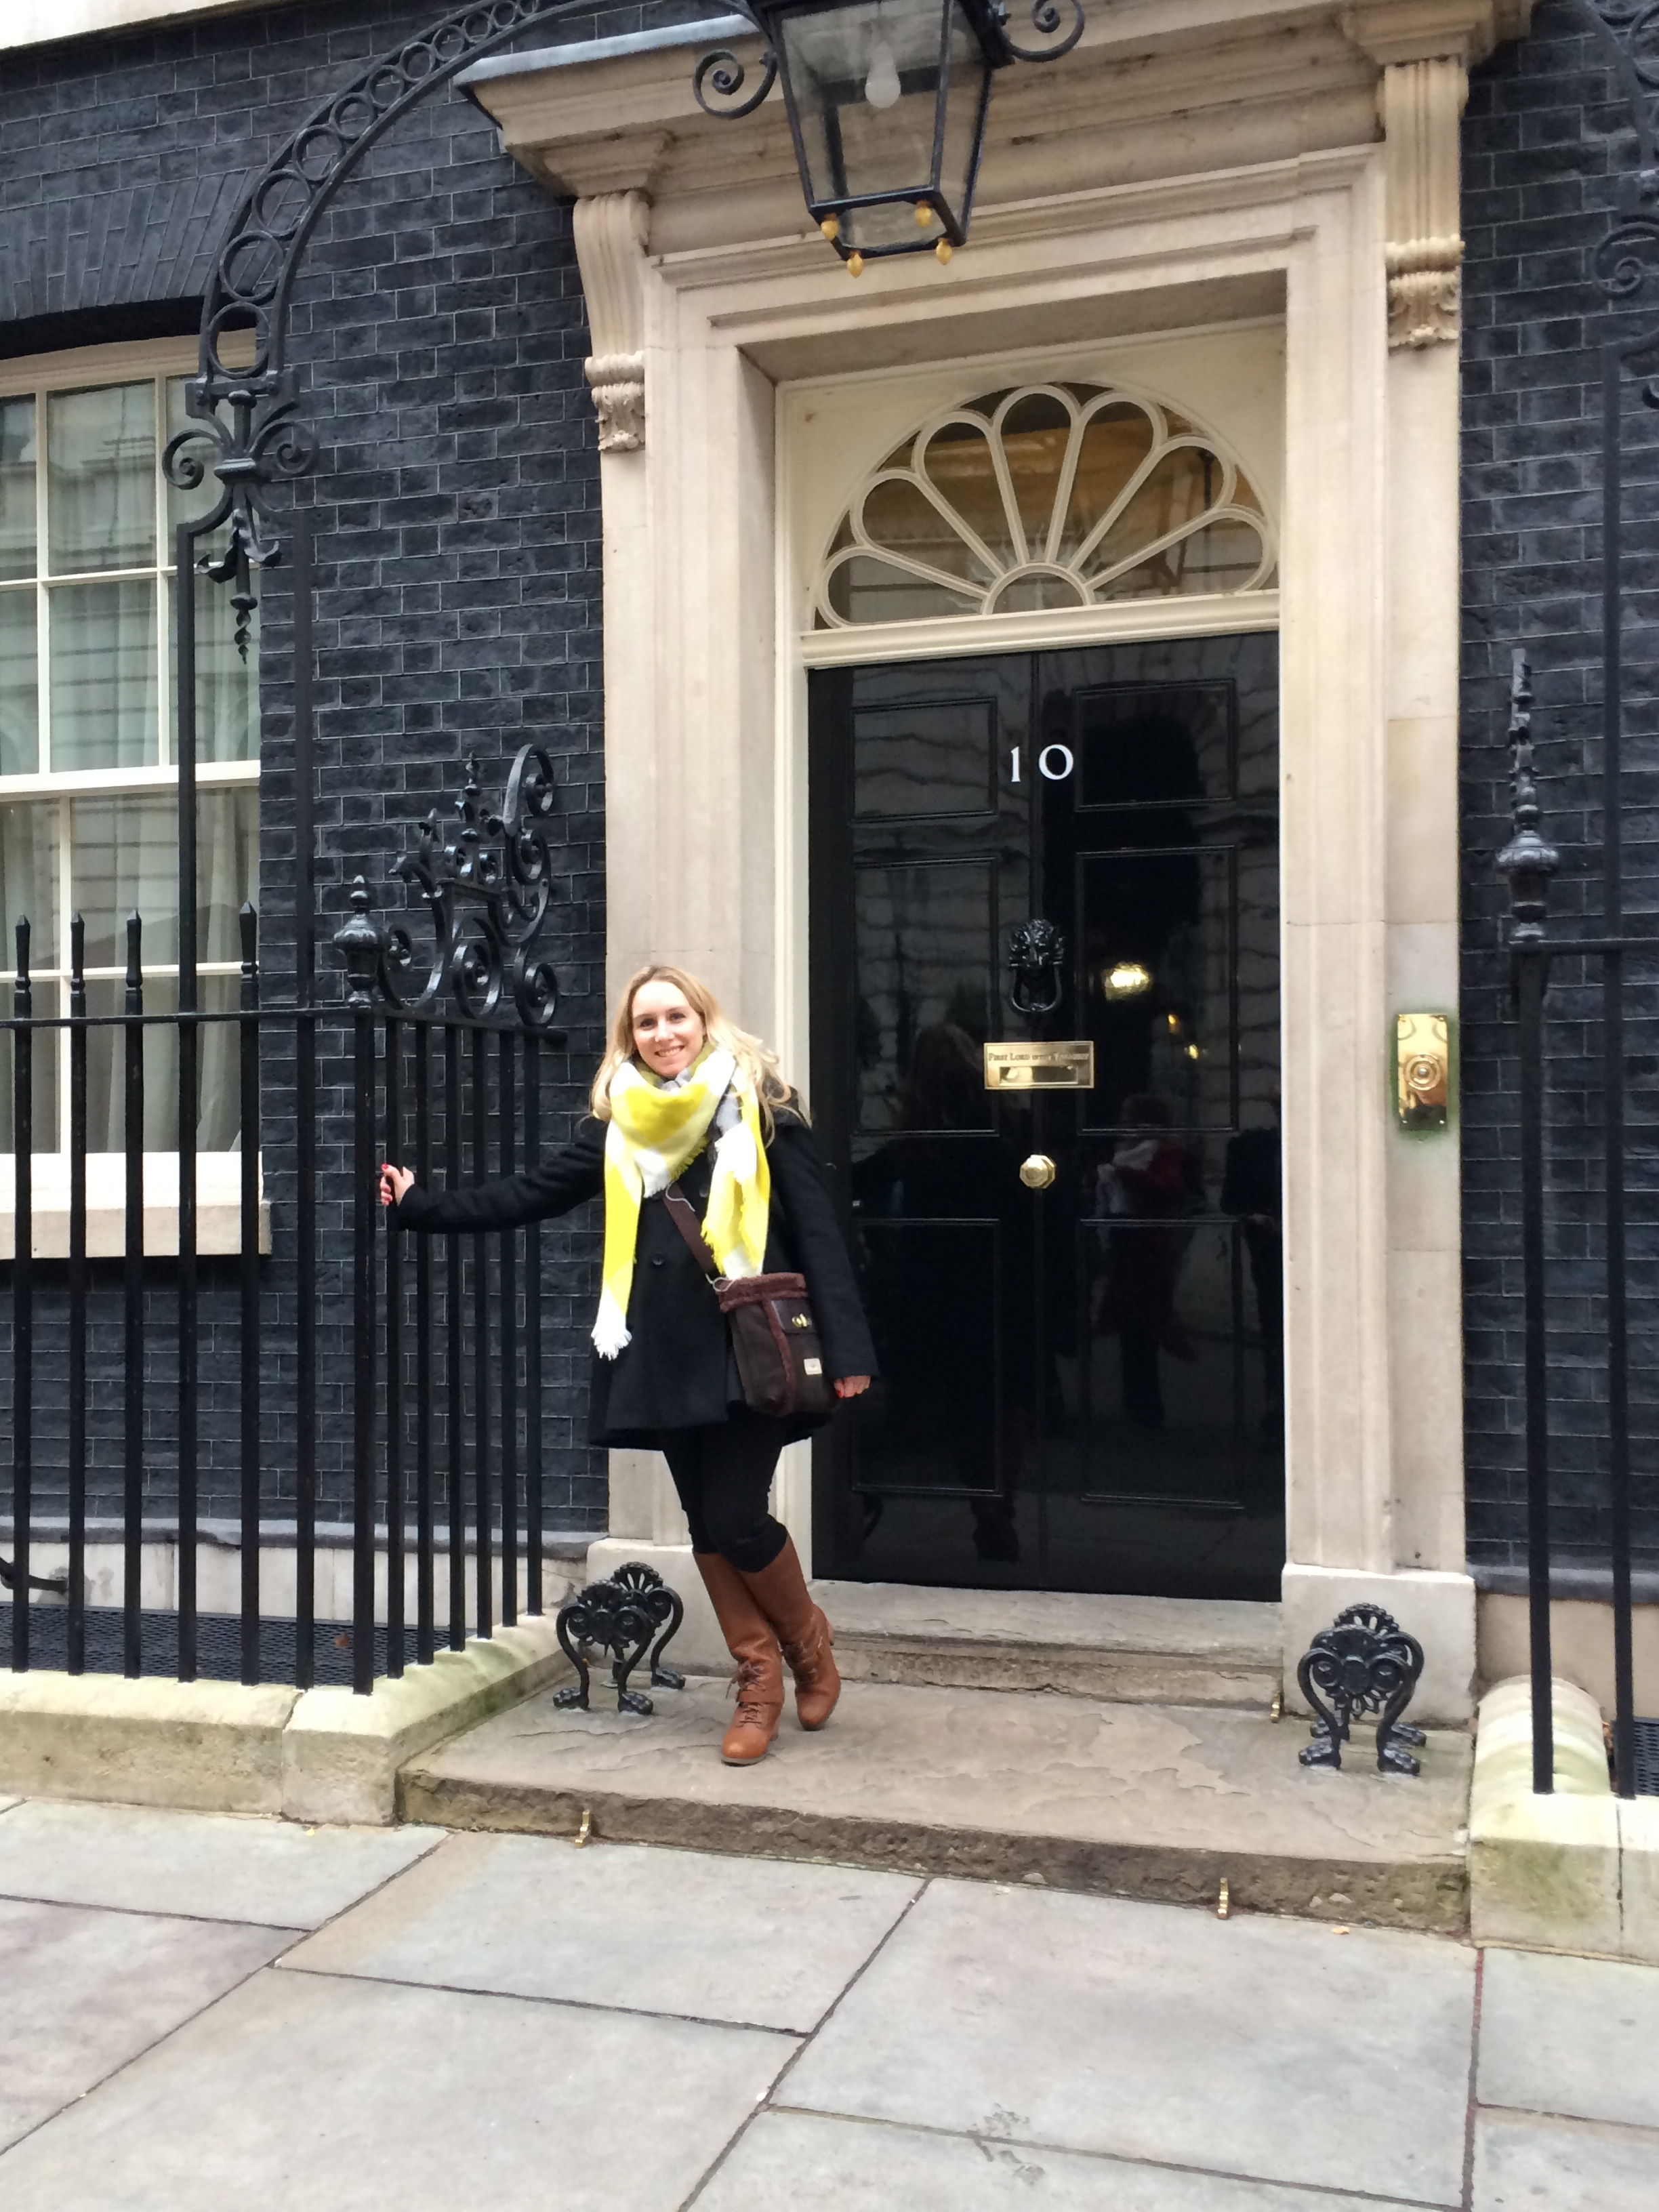 Small Business Saturday at 10 Downing Street